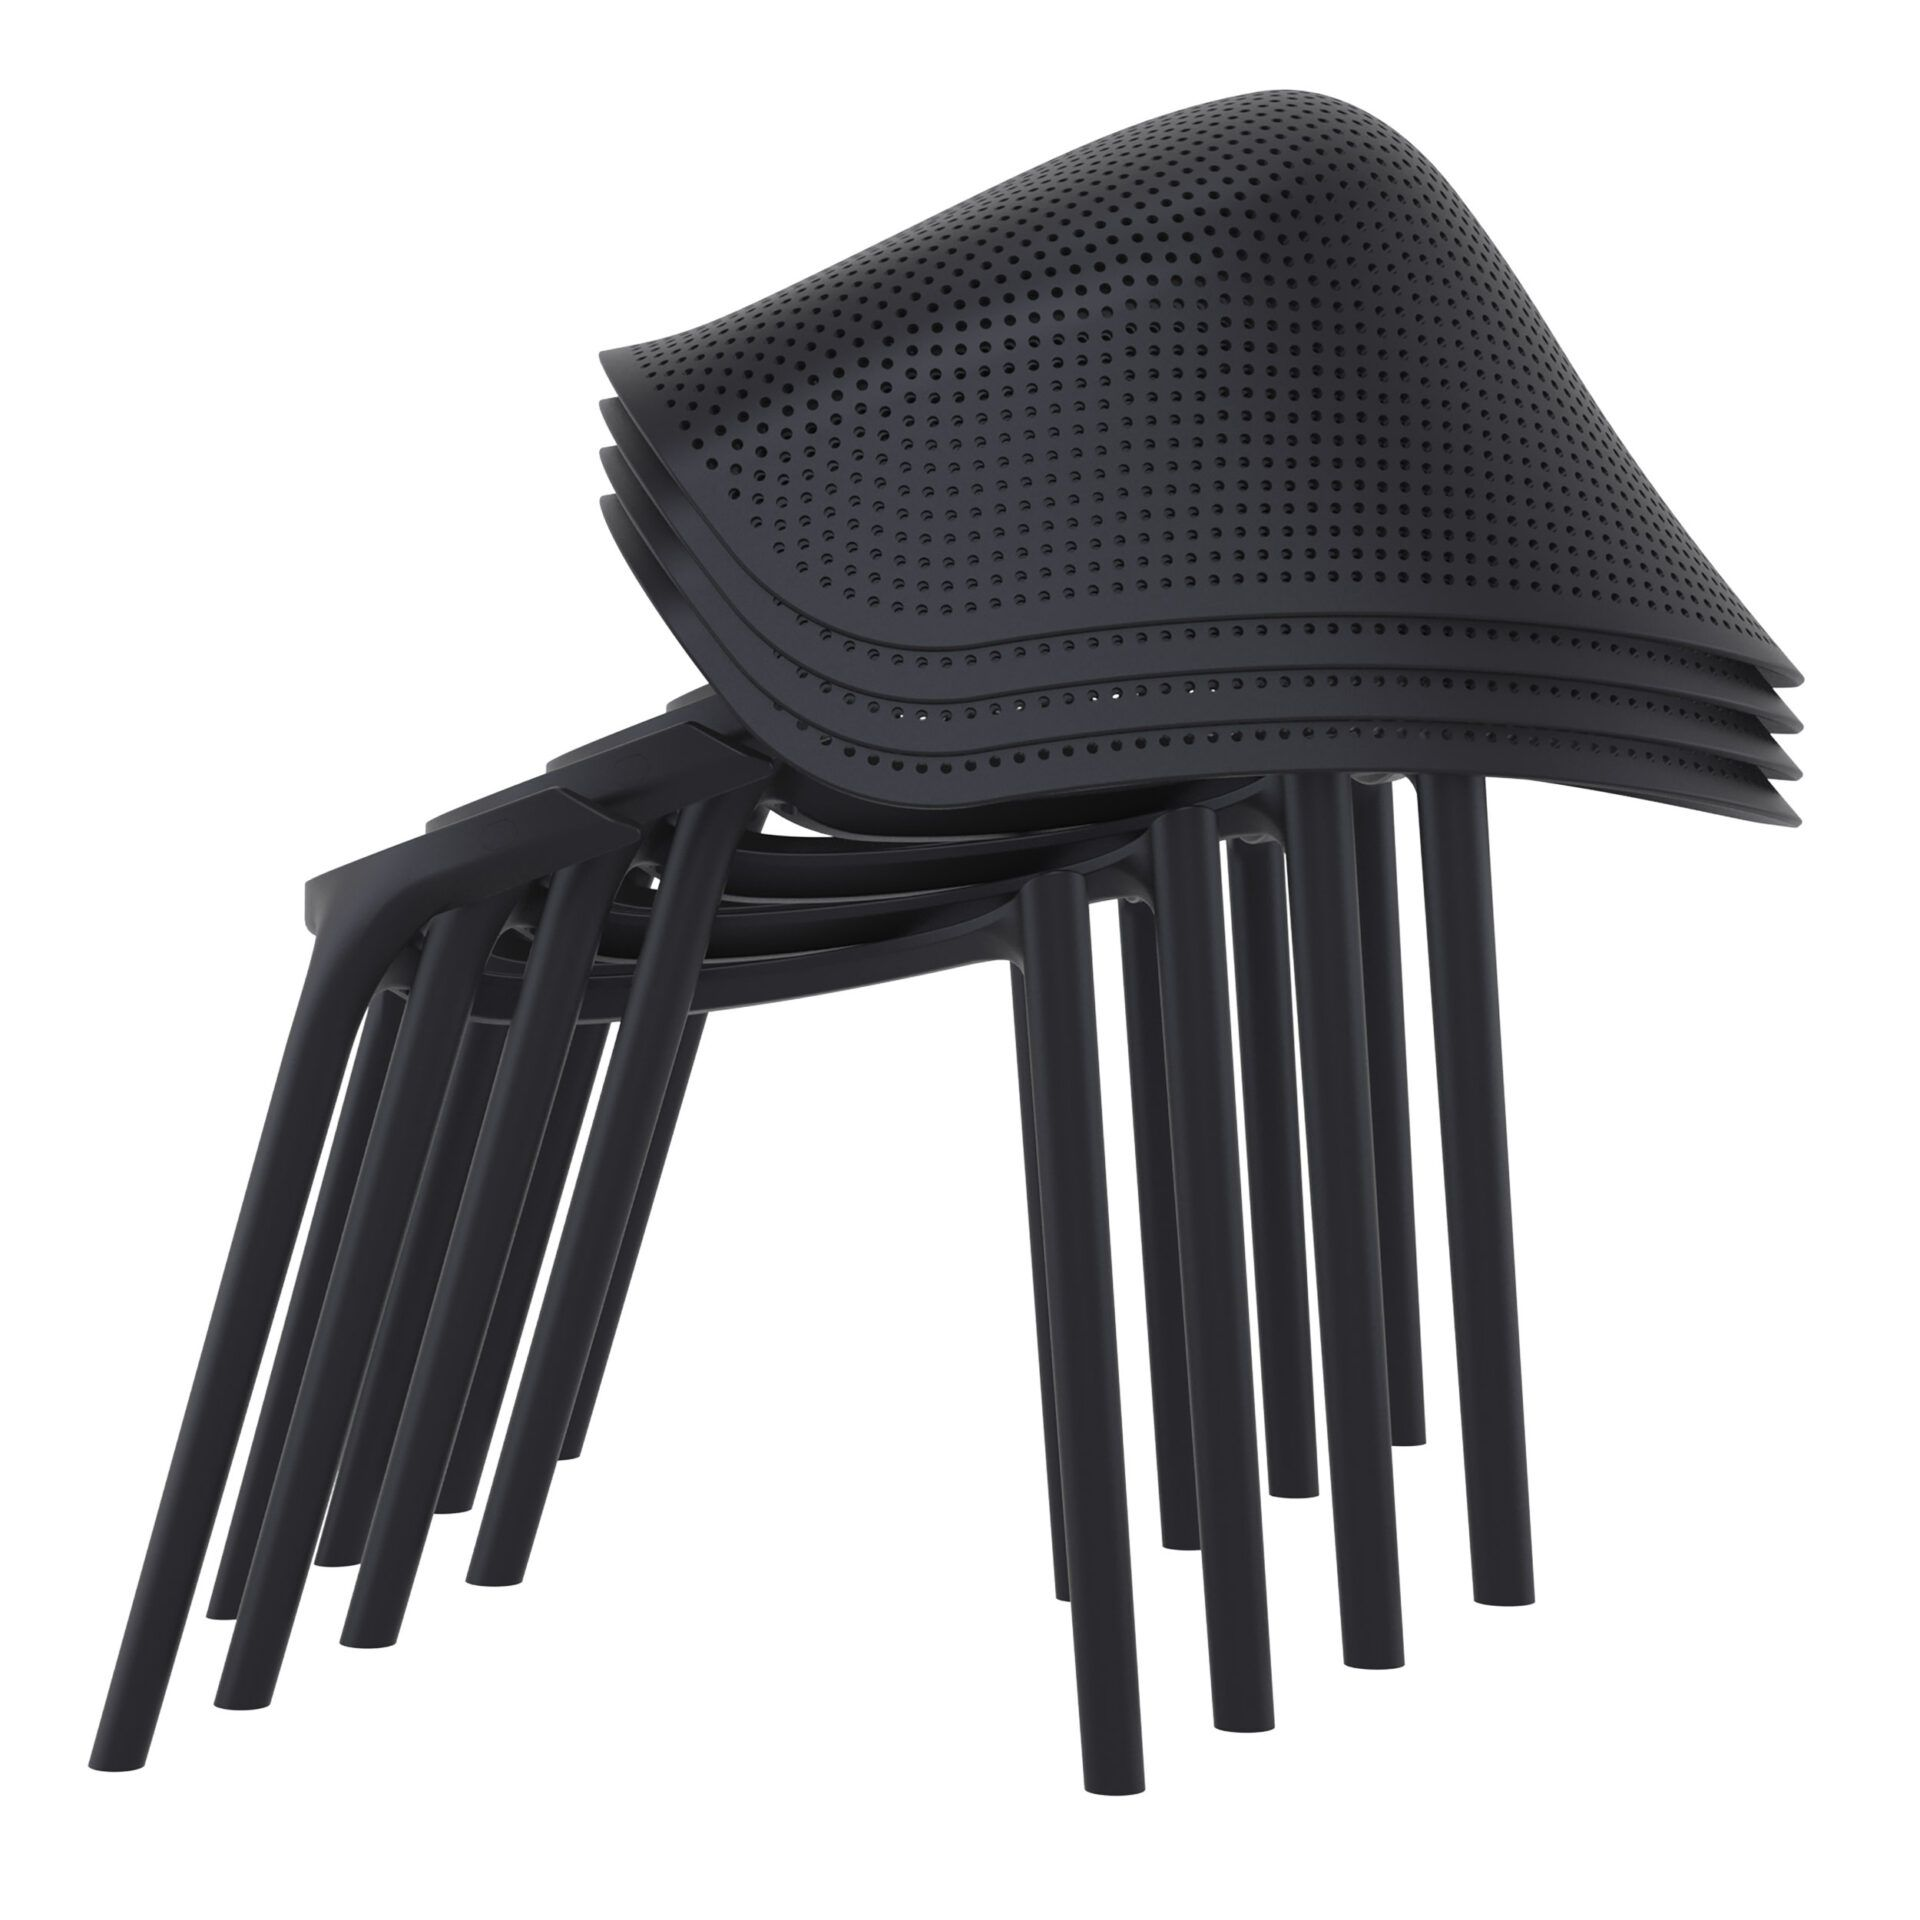 outdoor seating polypropylene sky chair stack 1